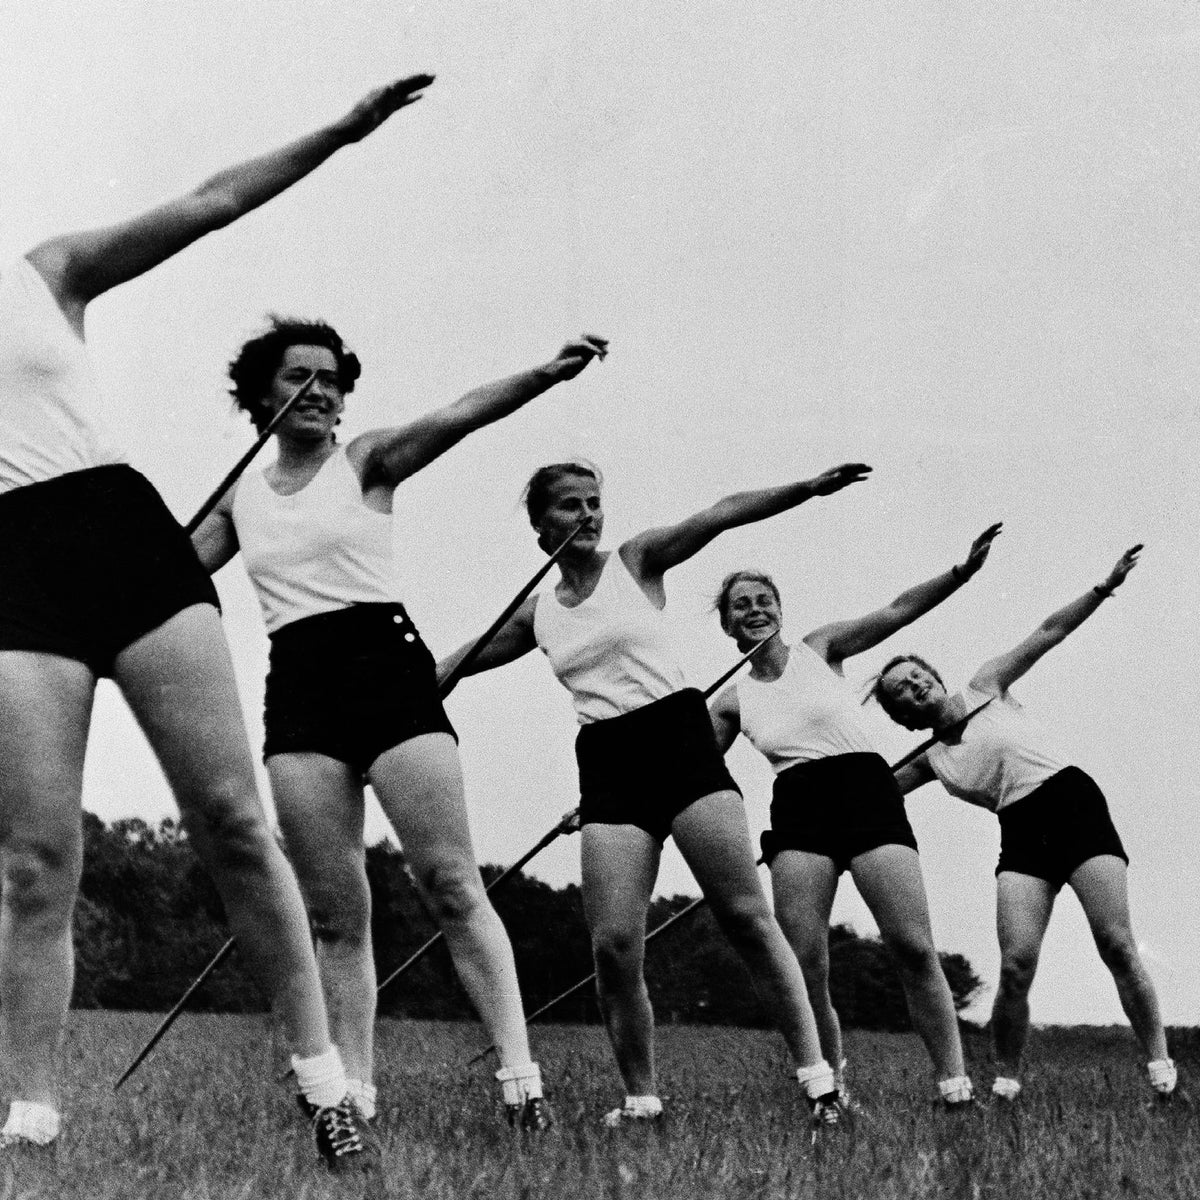 German girls shown in physical training at the Reich's Colonial School for Women, in this undated photo, Rendsburg, Germany.